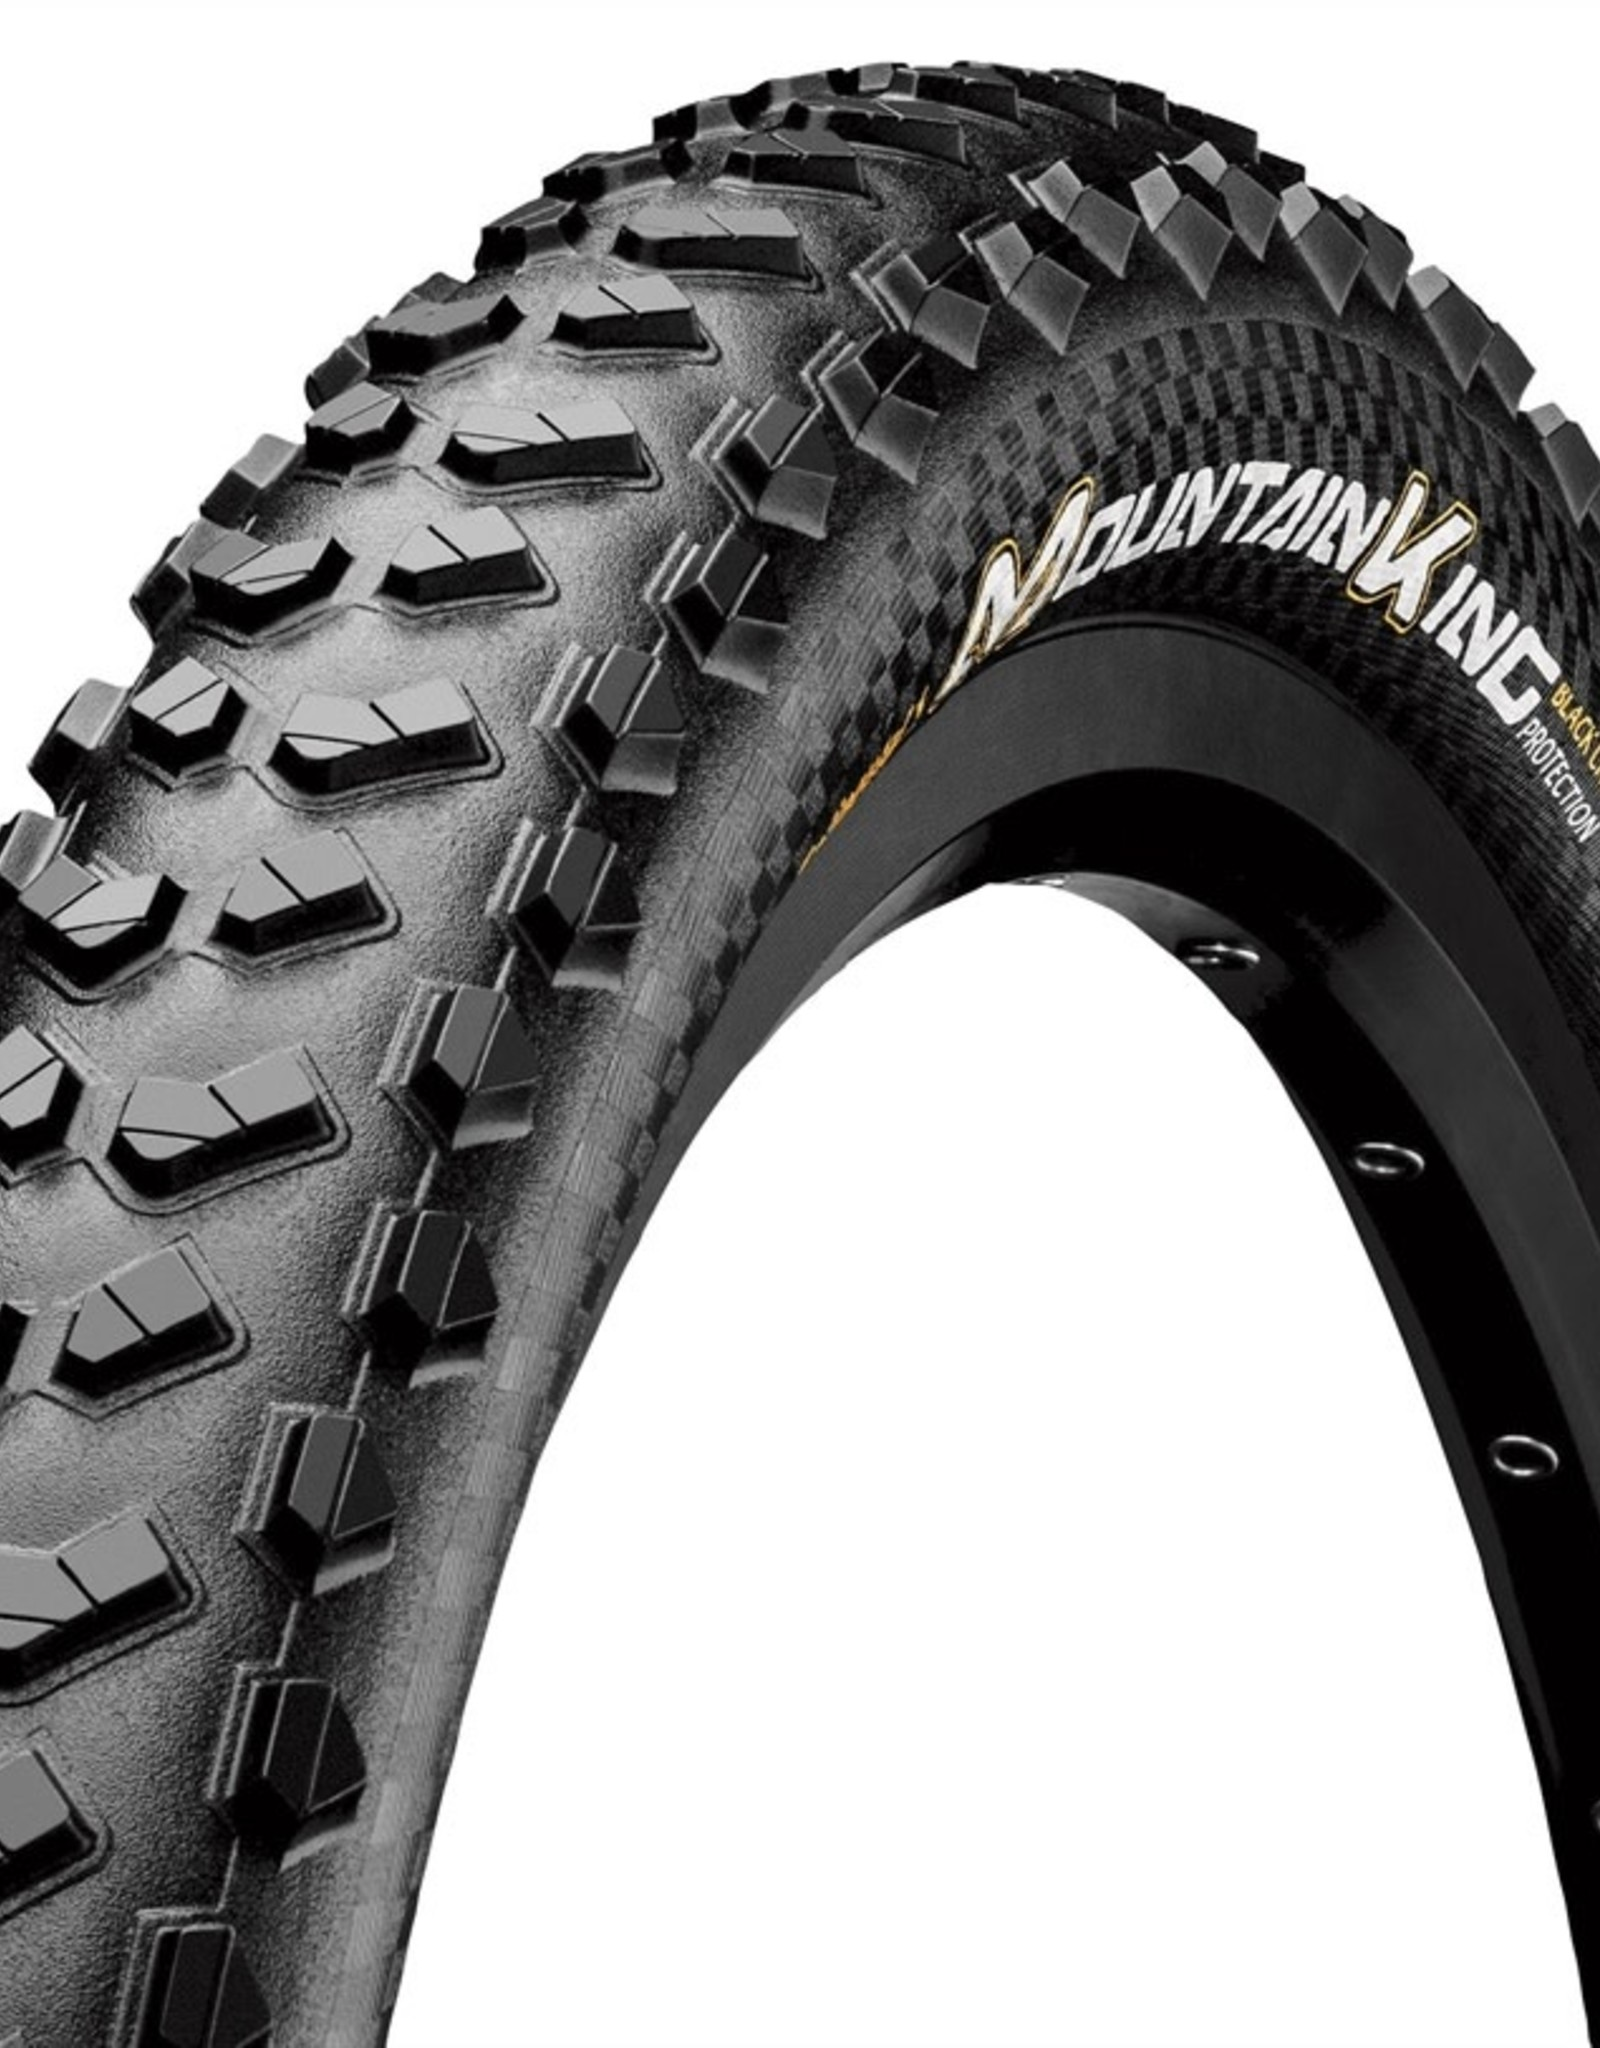 Continental - Tire - Mountain King 29 x 2.3 - ProTection + Black Chili